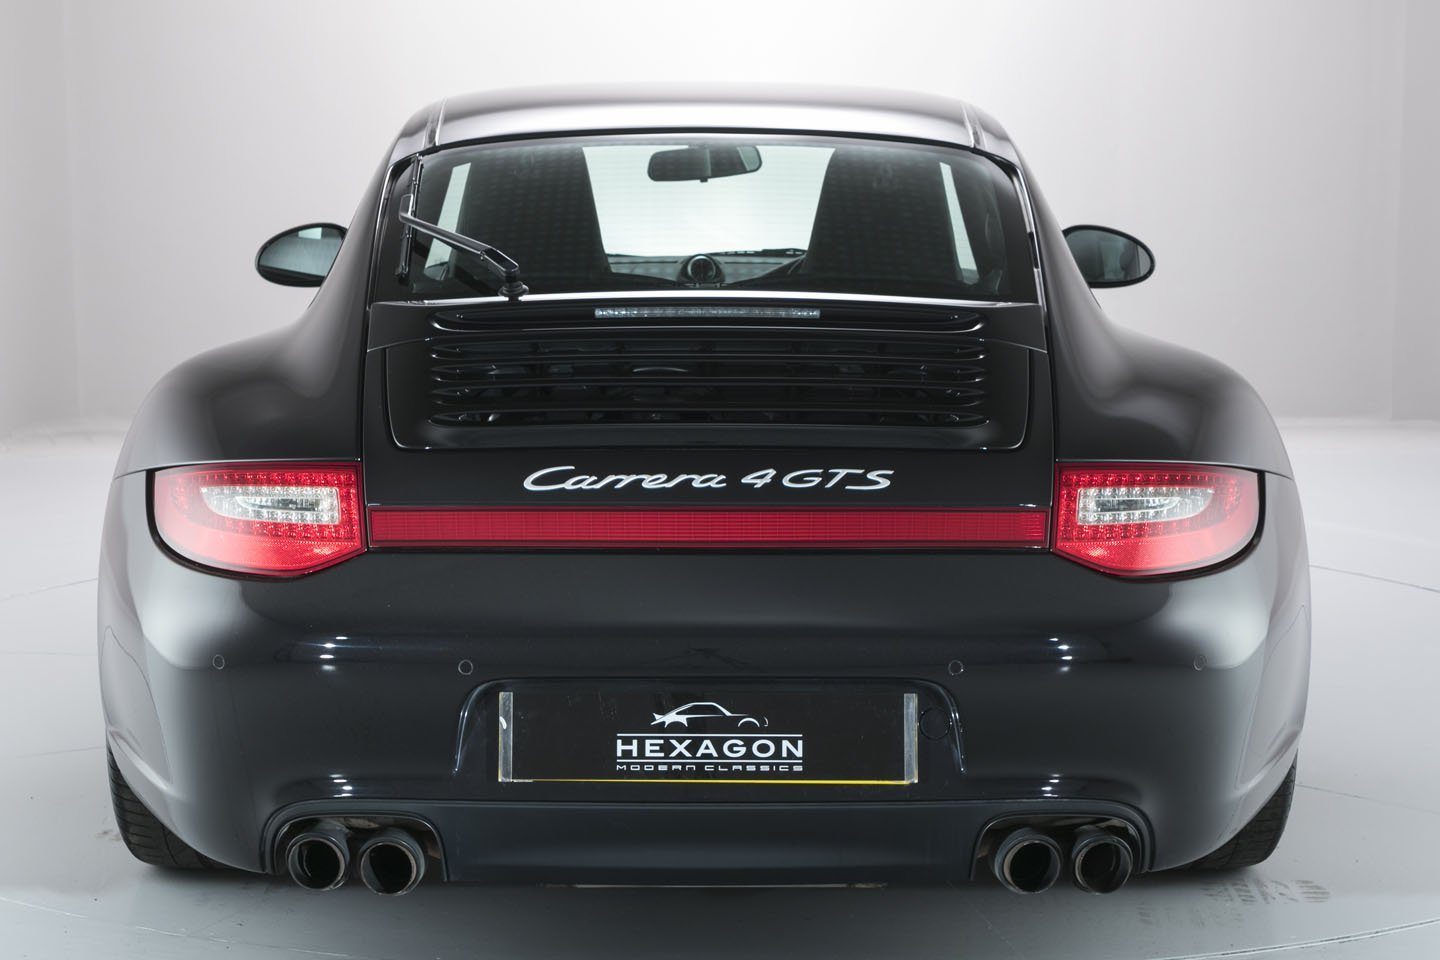 997 C4 GTS Hexagon rear